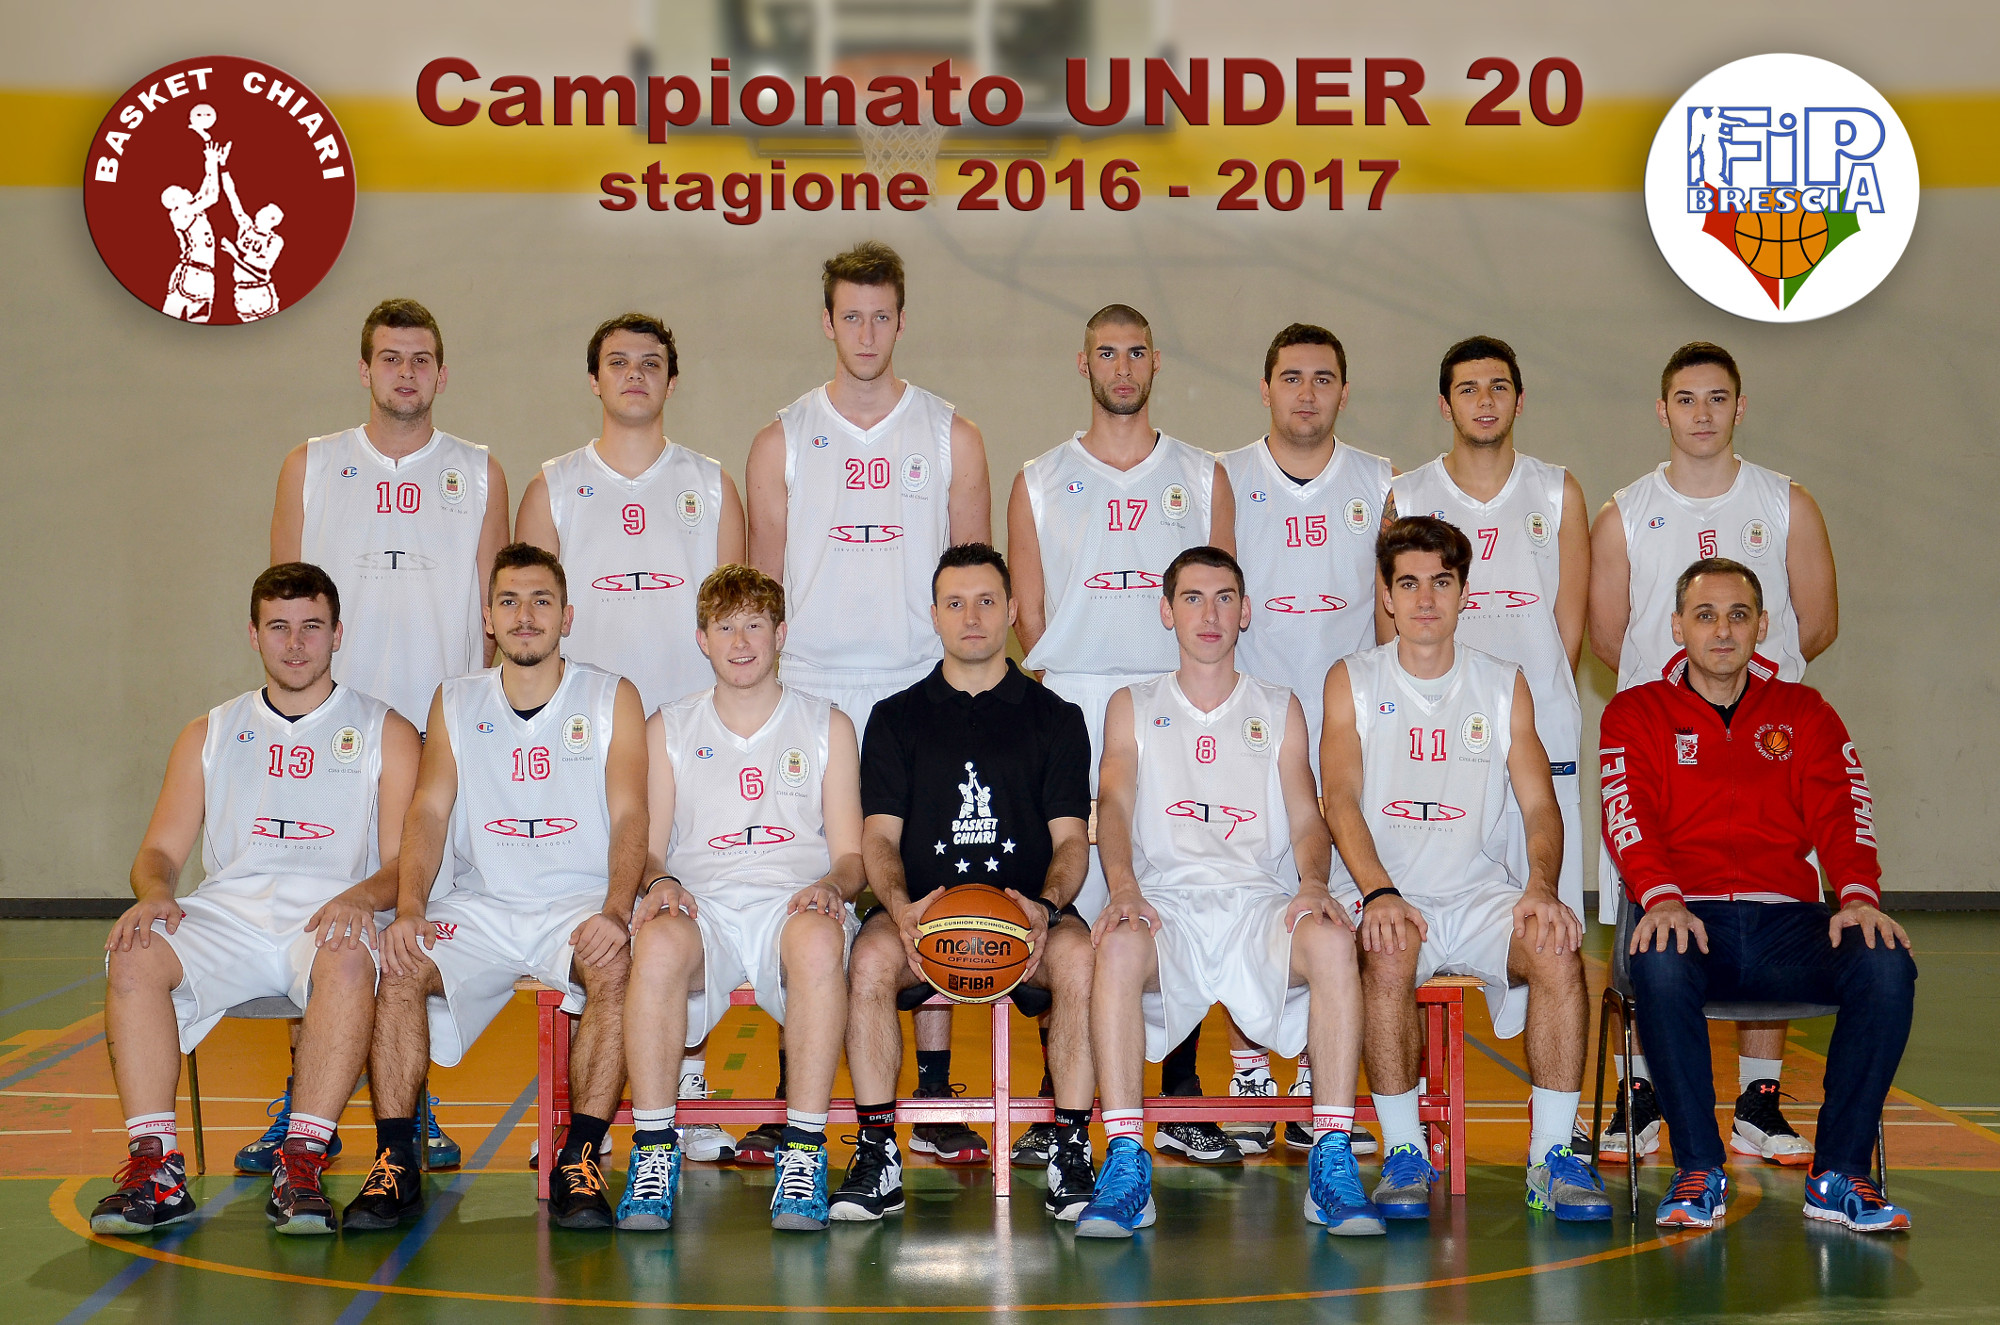 Basket Chiari - Under 20 - 20165/2017